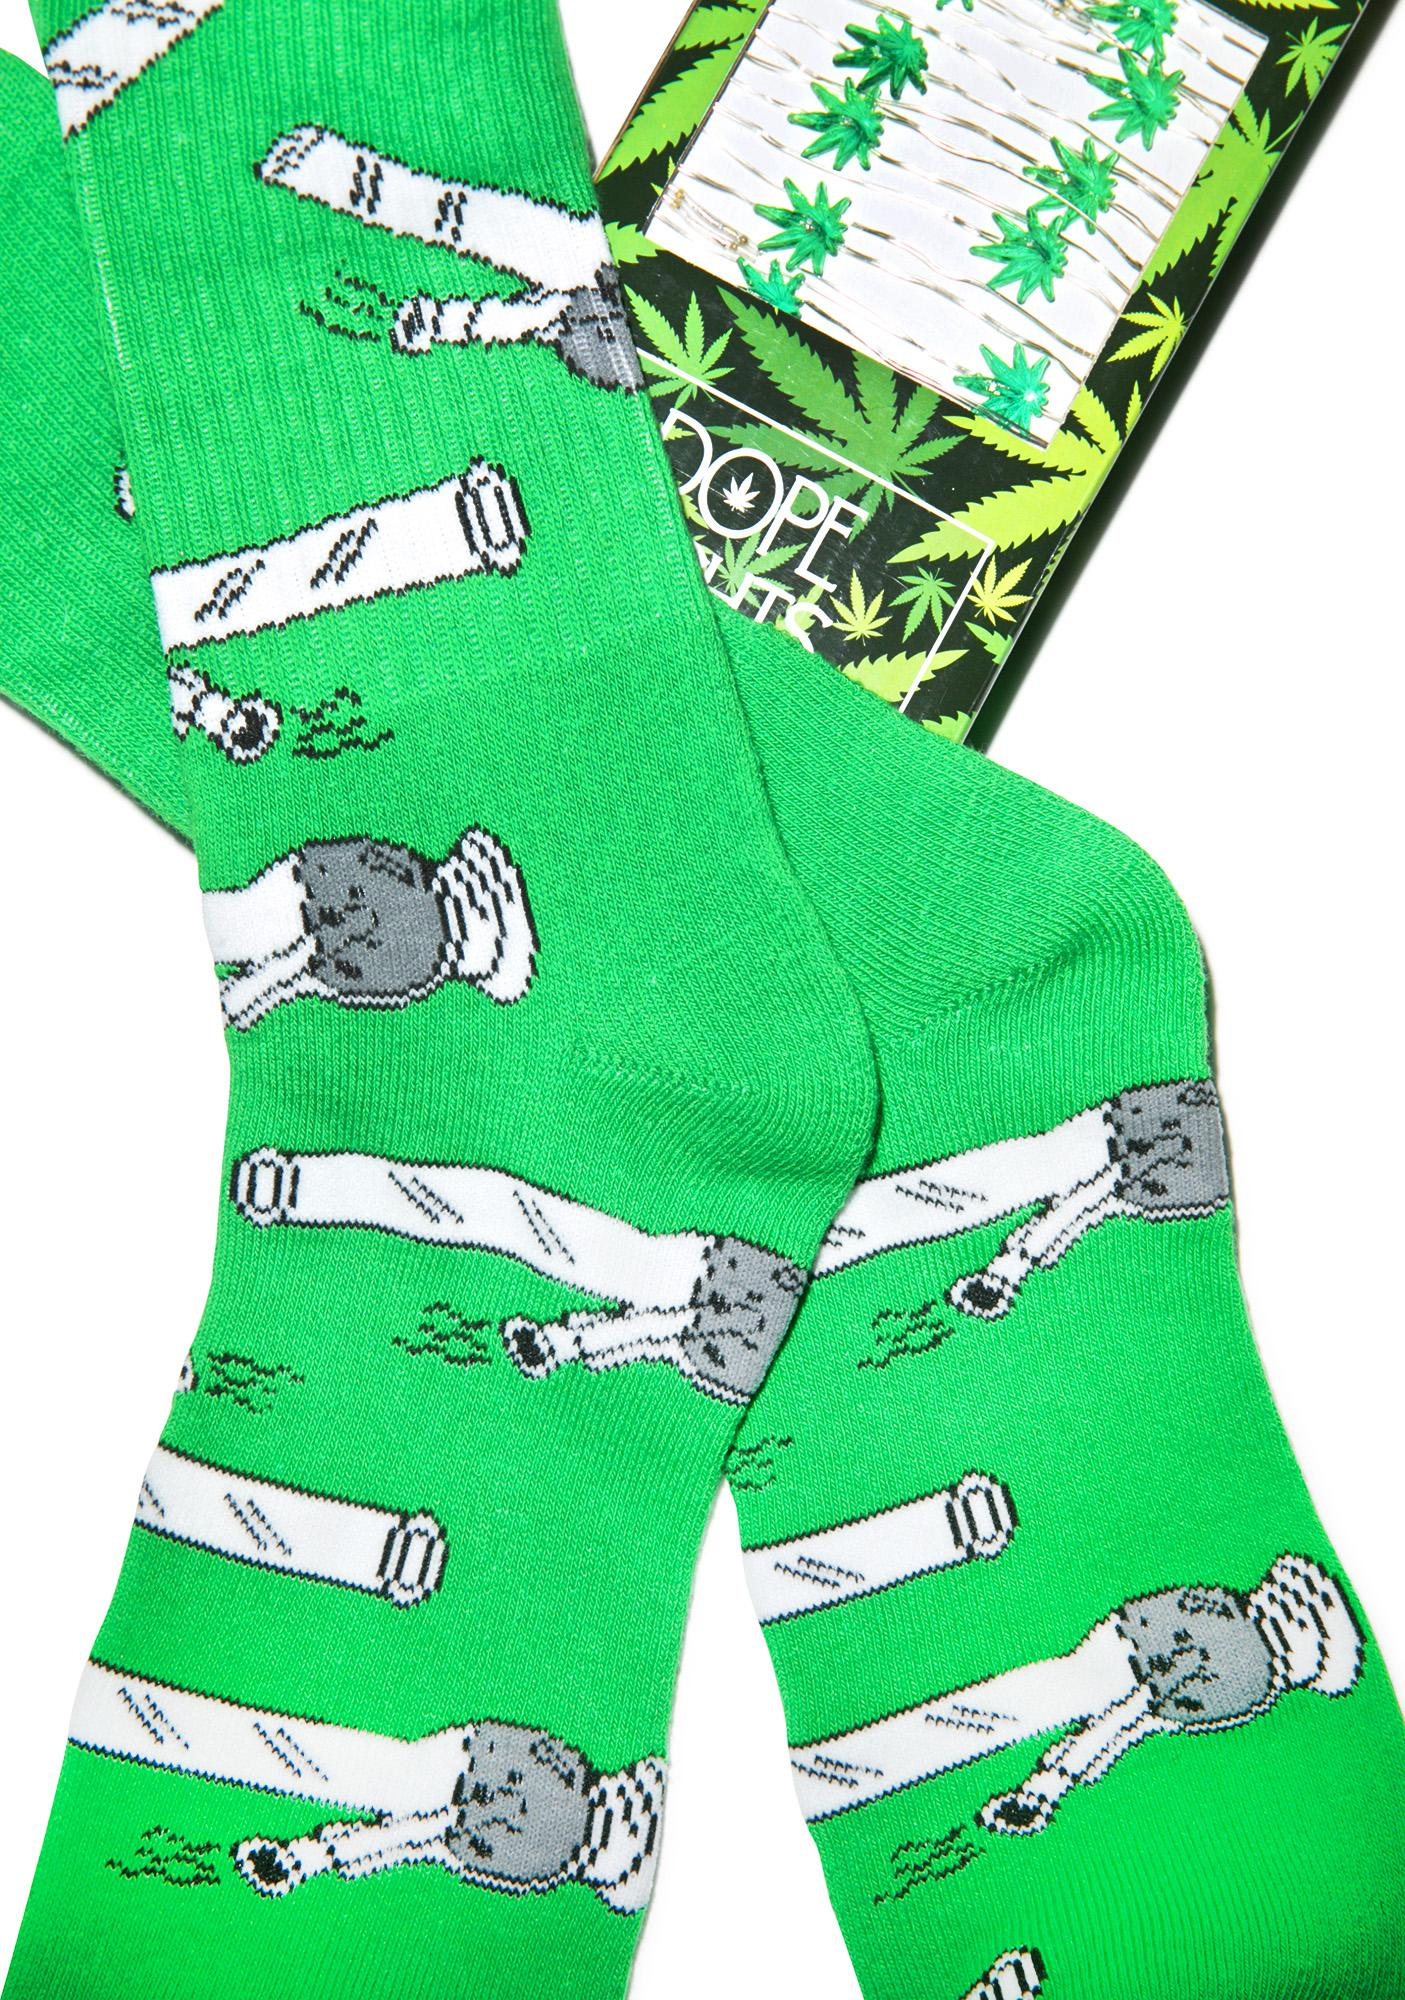 40s & Shorties Bong Socks